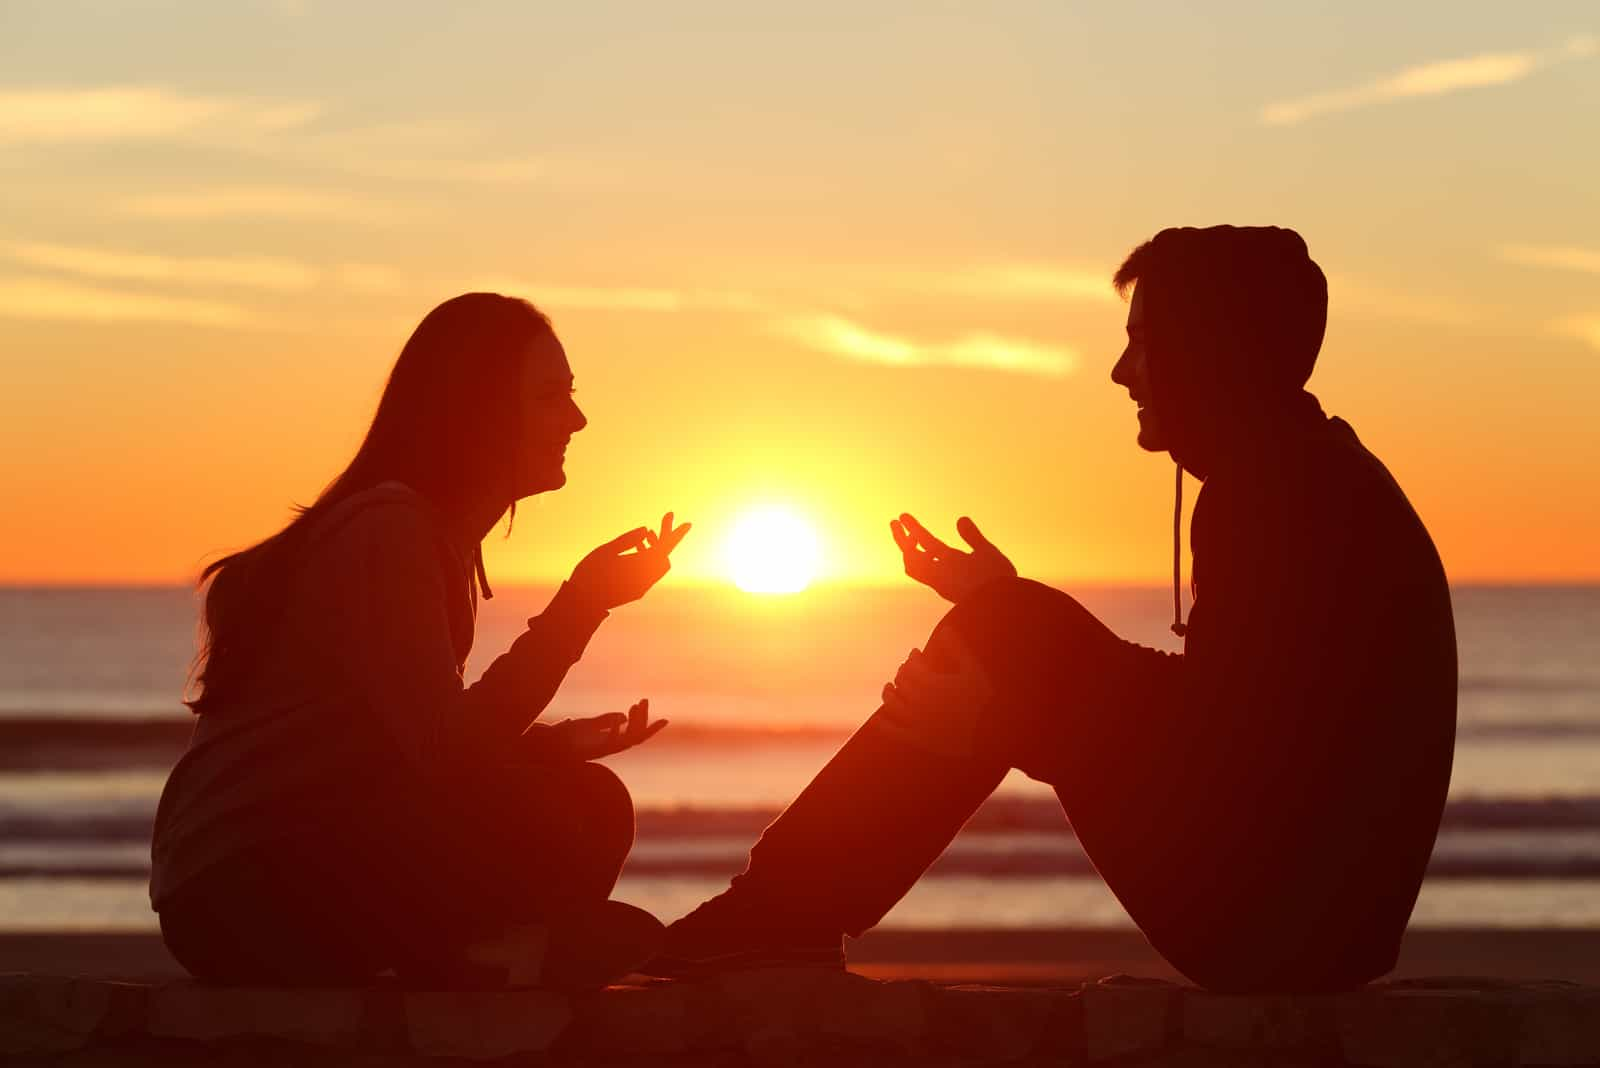 a smiling man and woman sit on the wall and talk